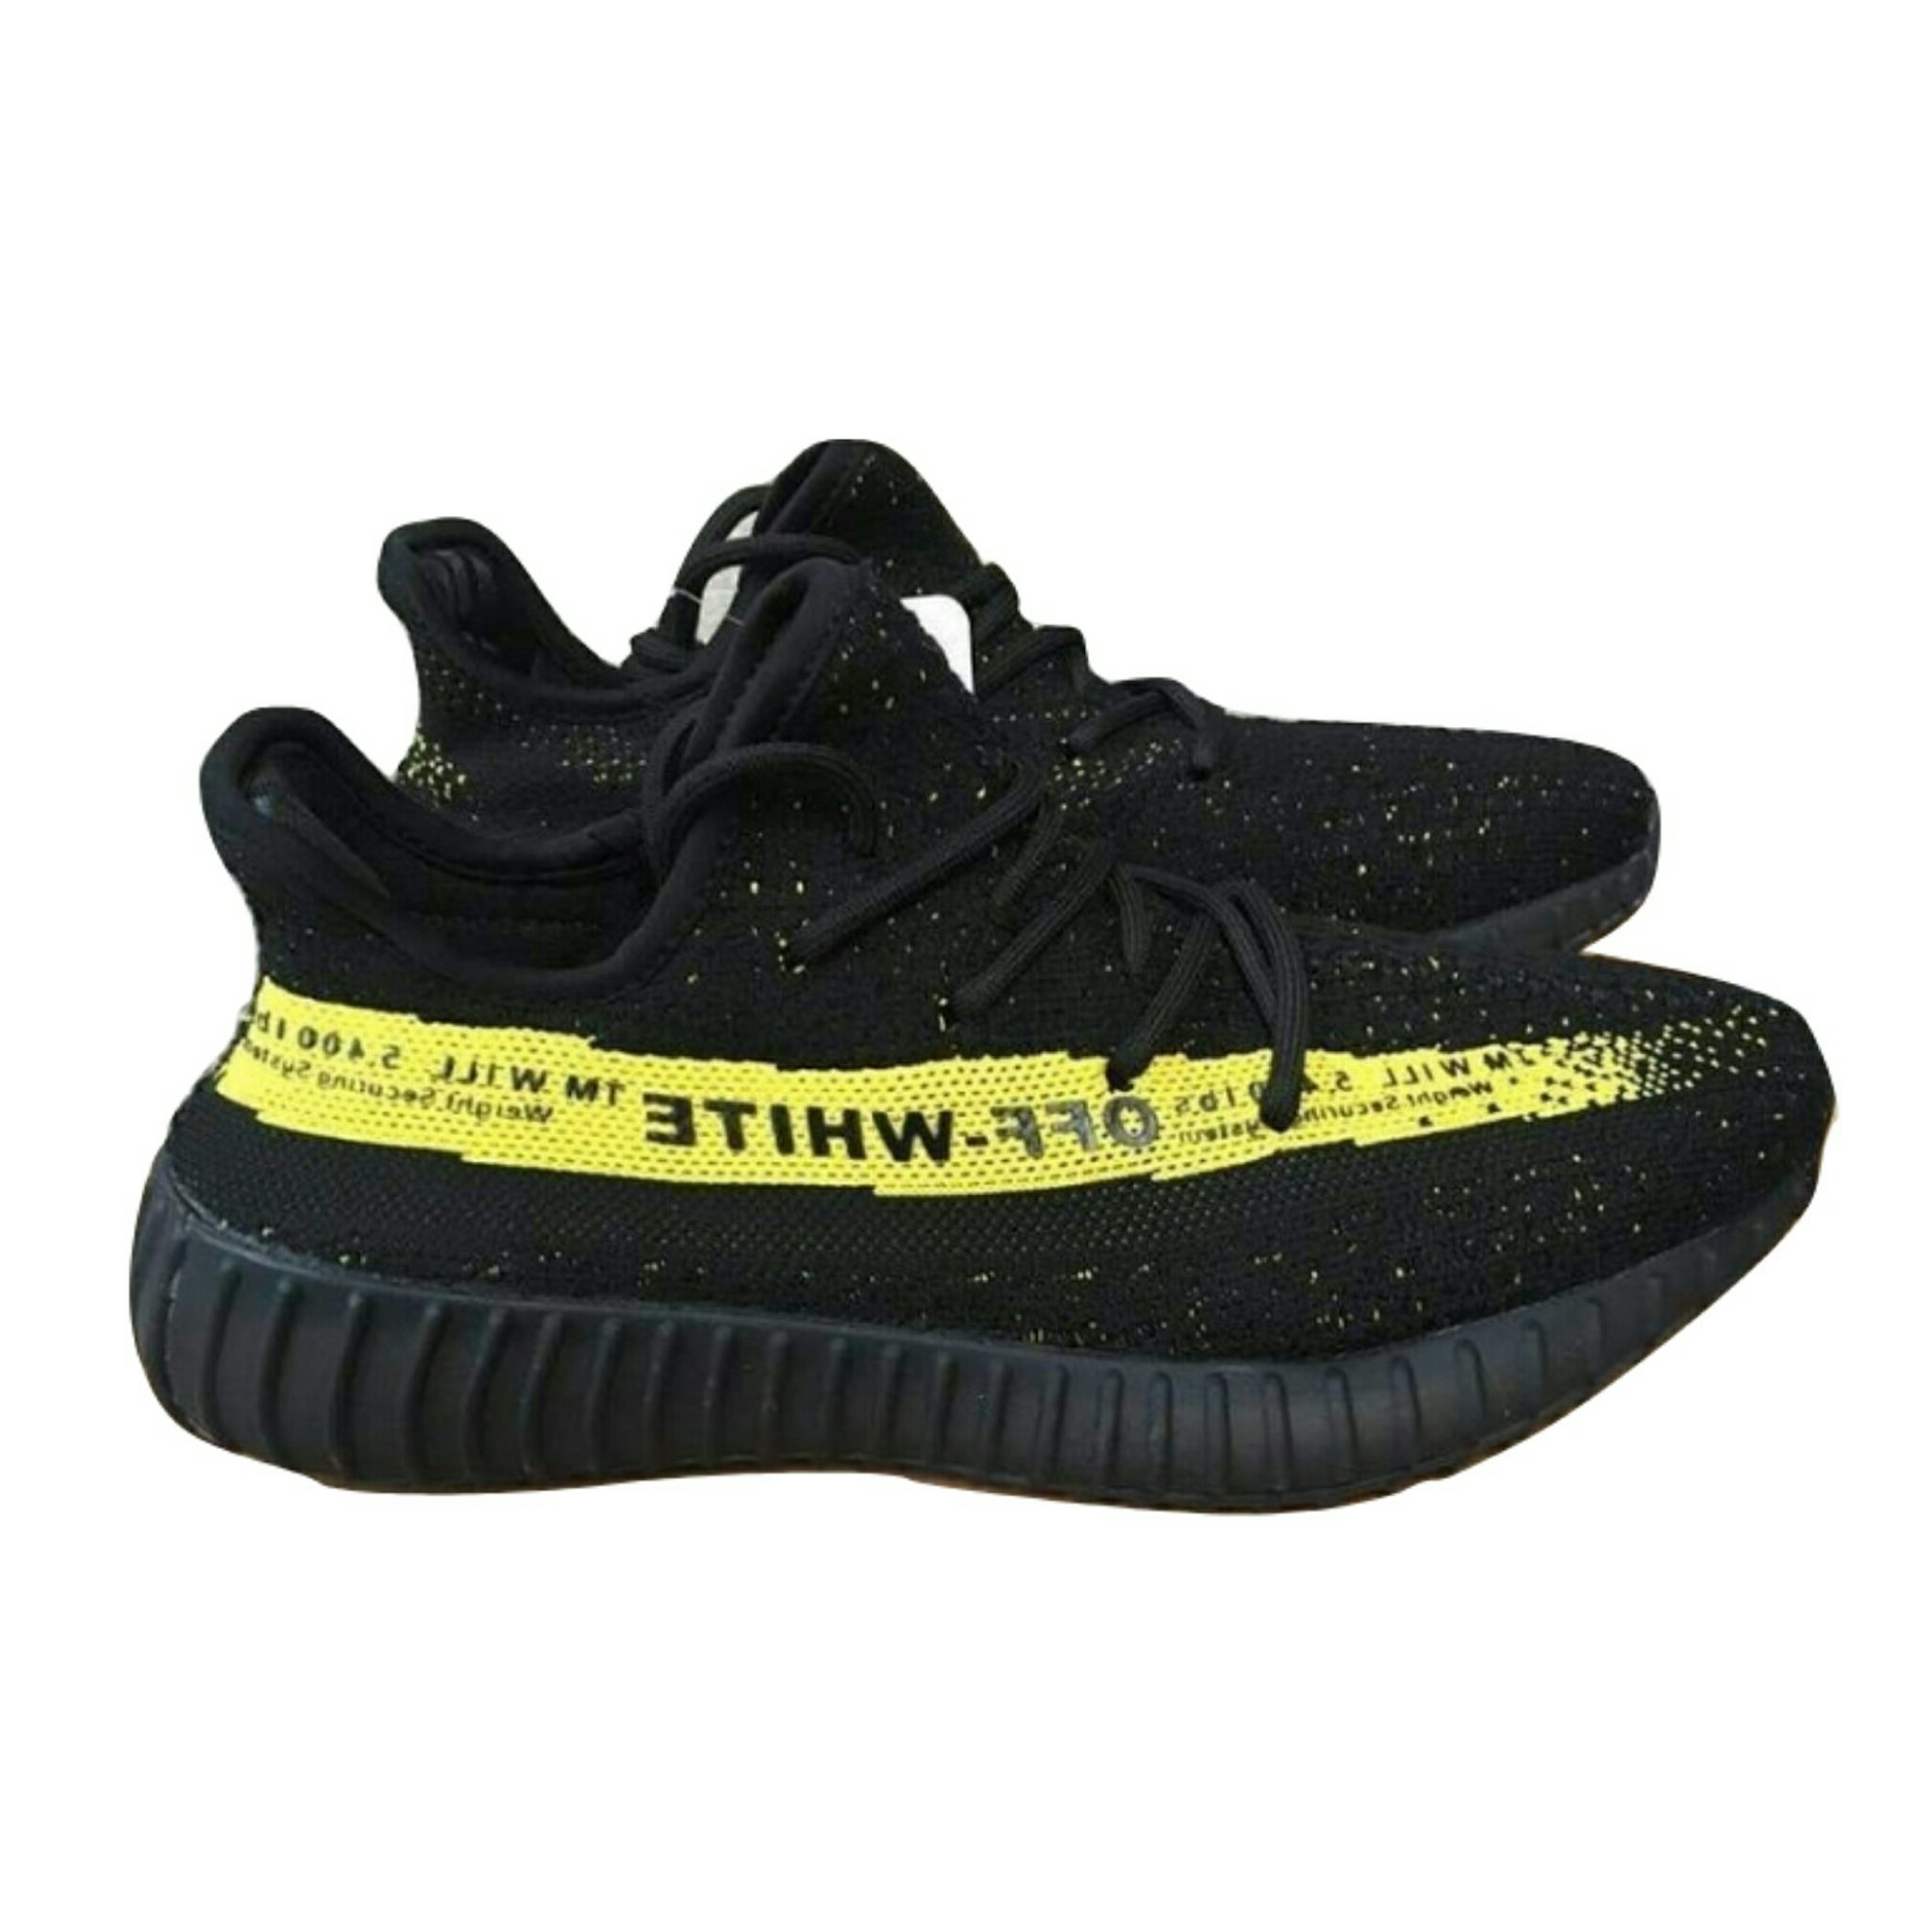 """the latest c8f1a a7861 Adidas Yeezy Boost 350 """"OFF-WHITE"""""""